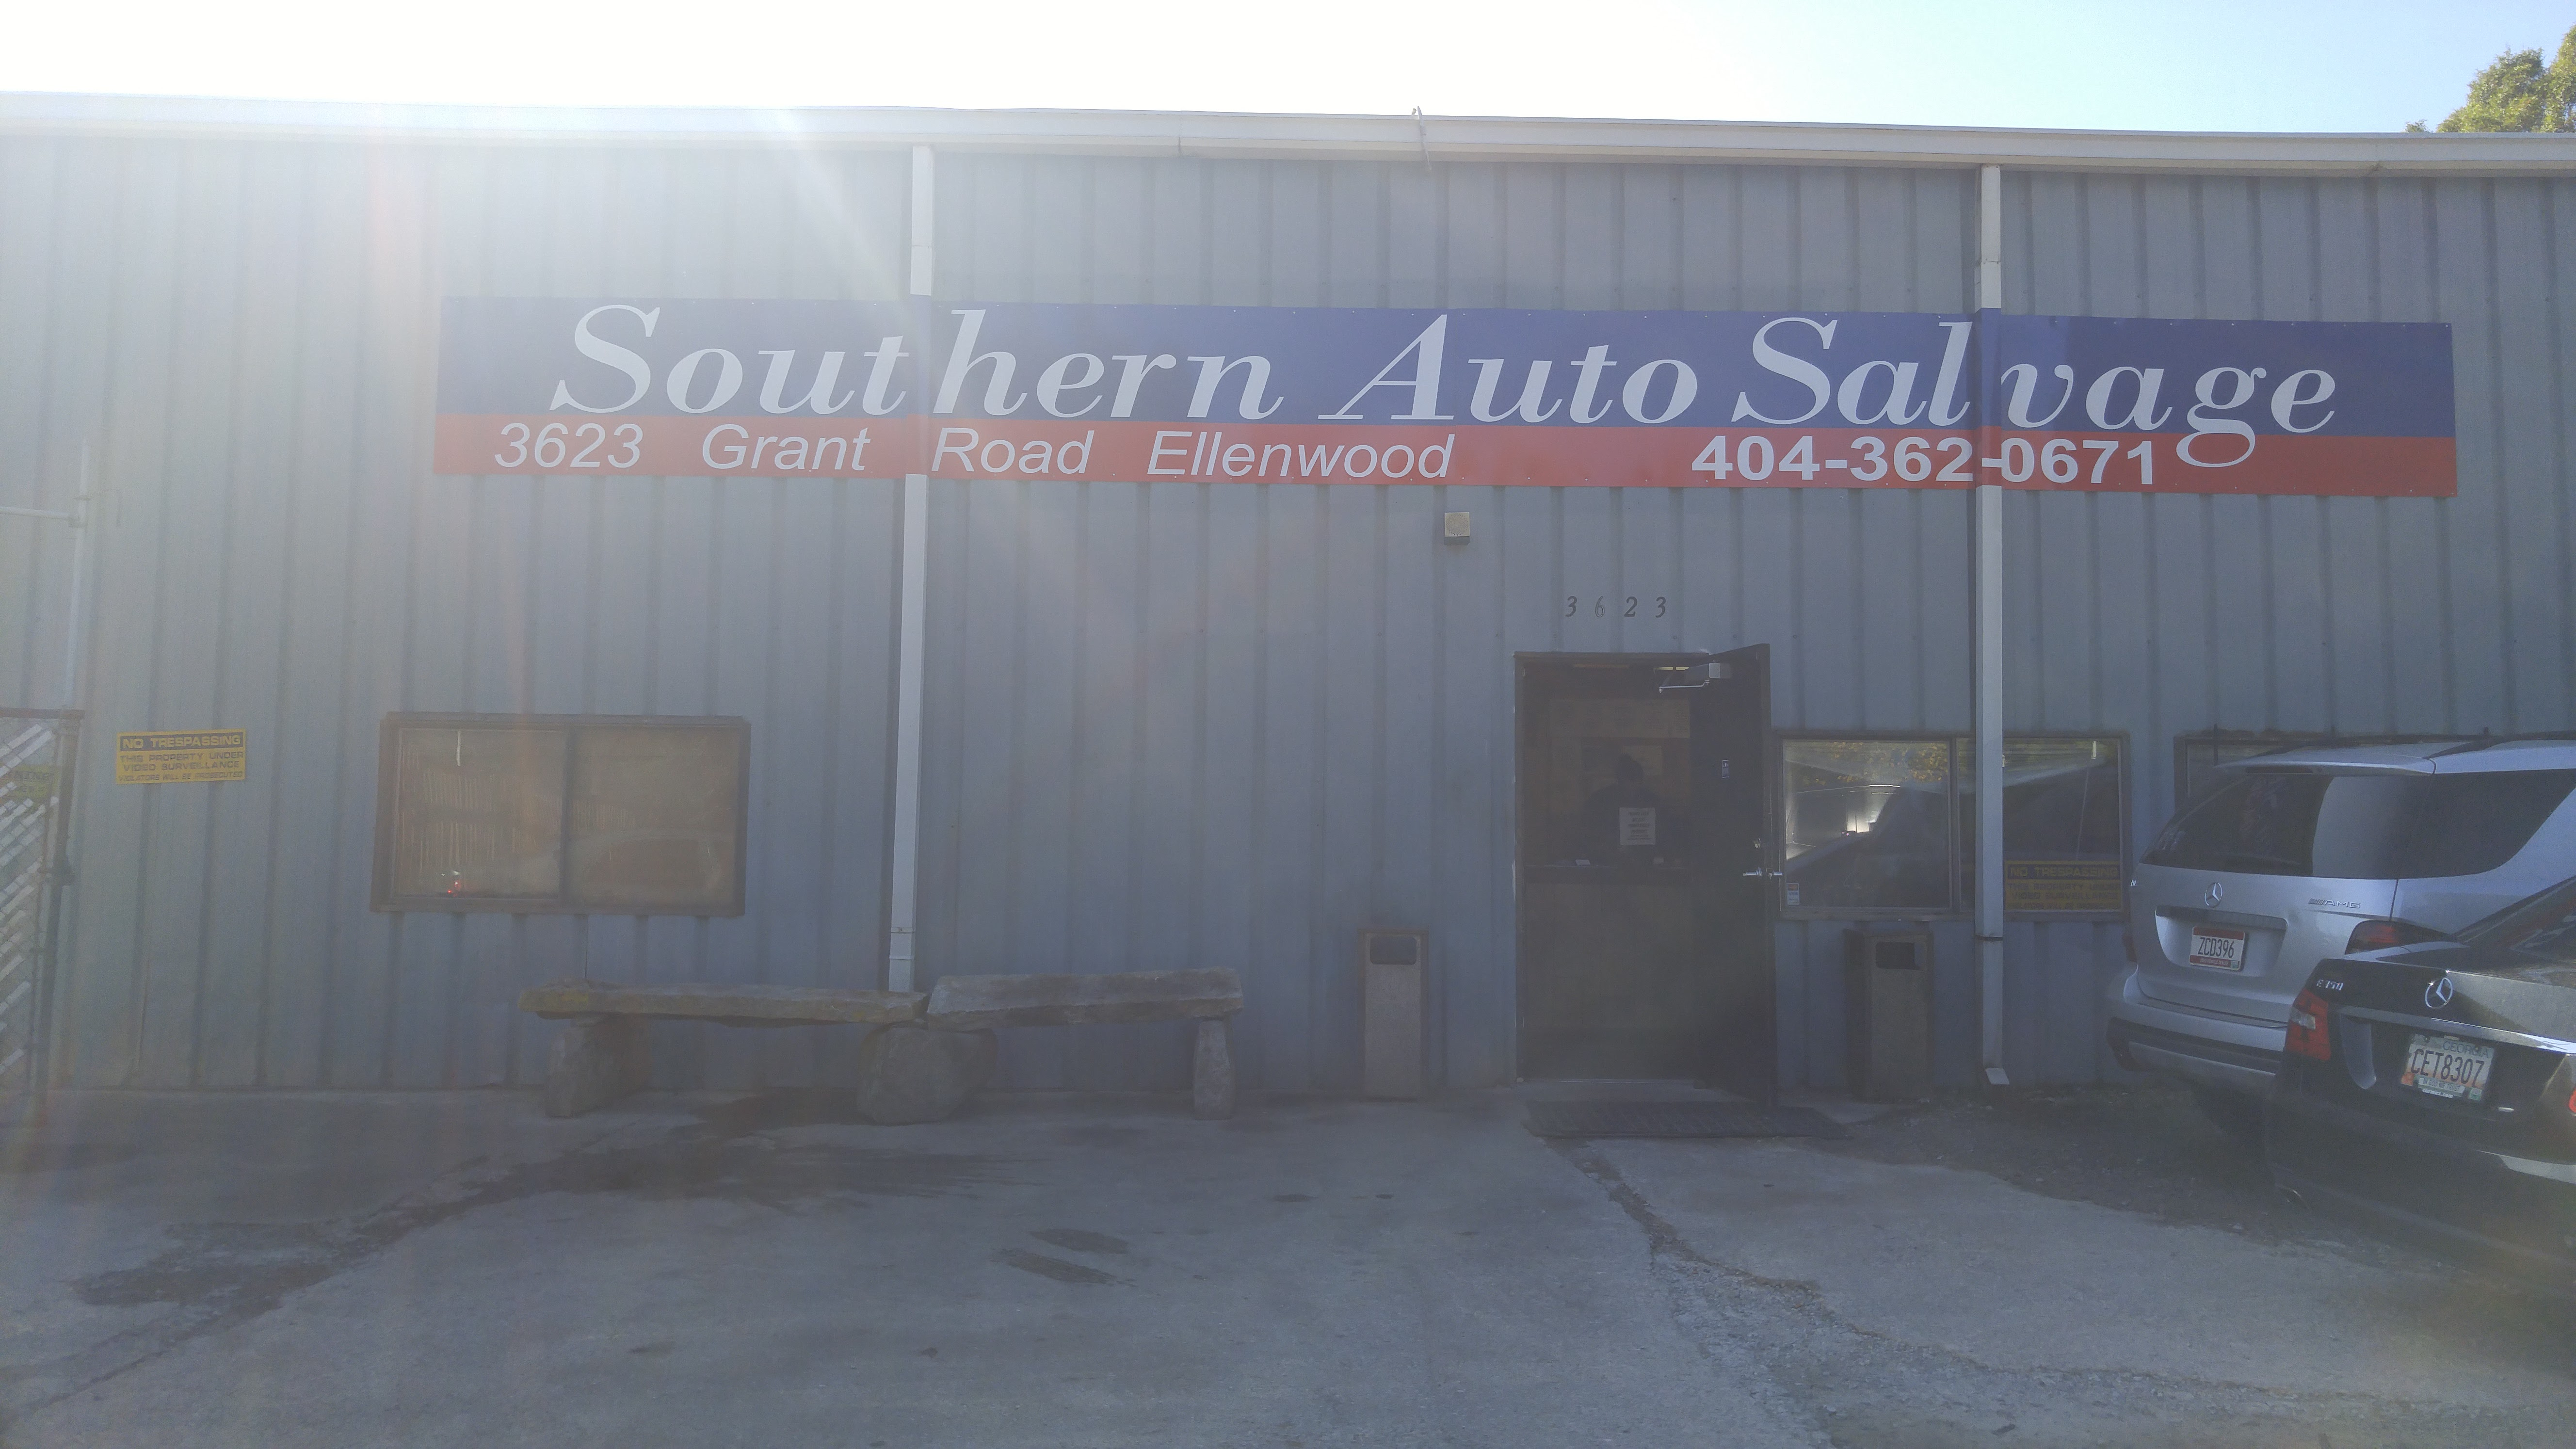 Southern Auto Salvage image 0